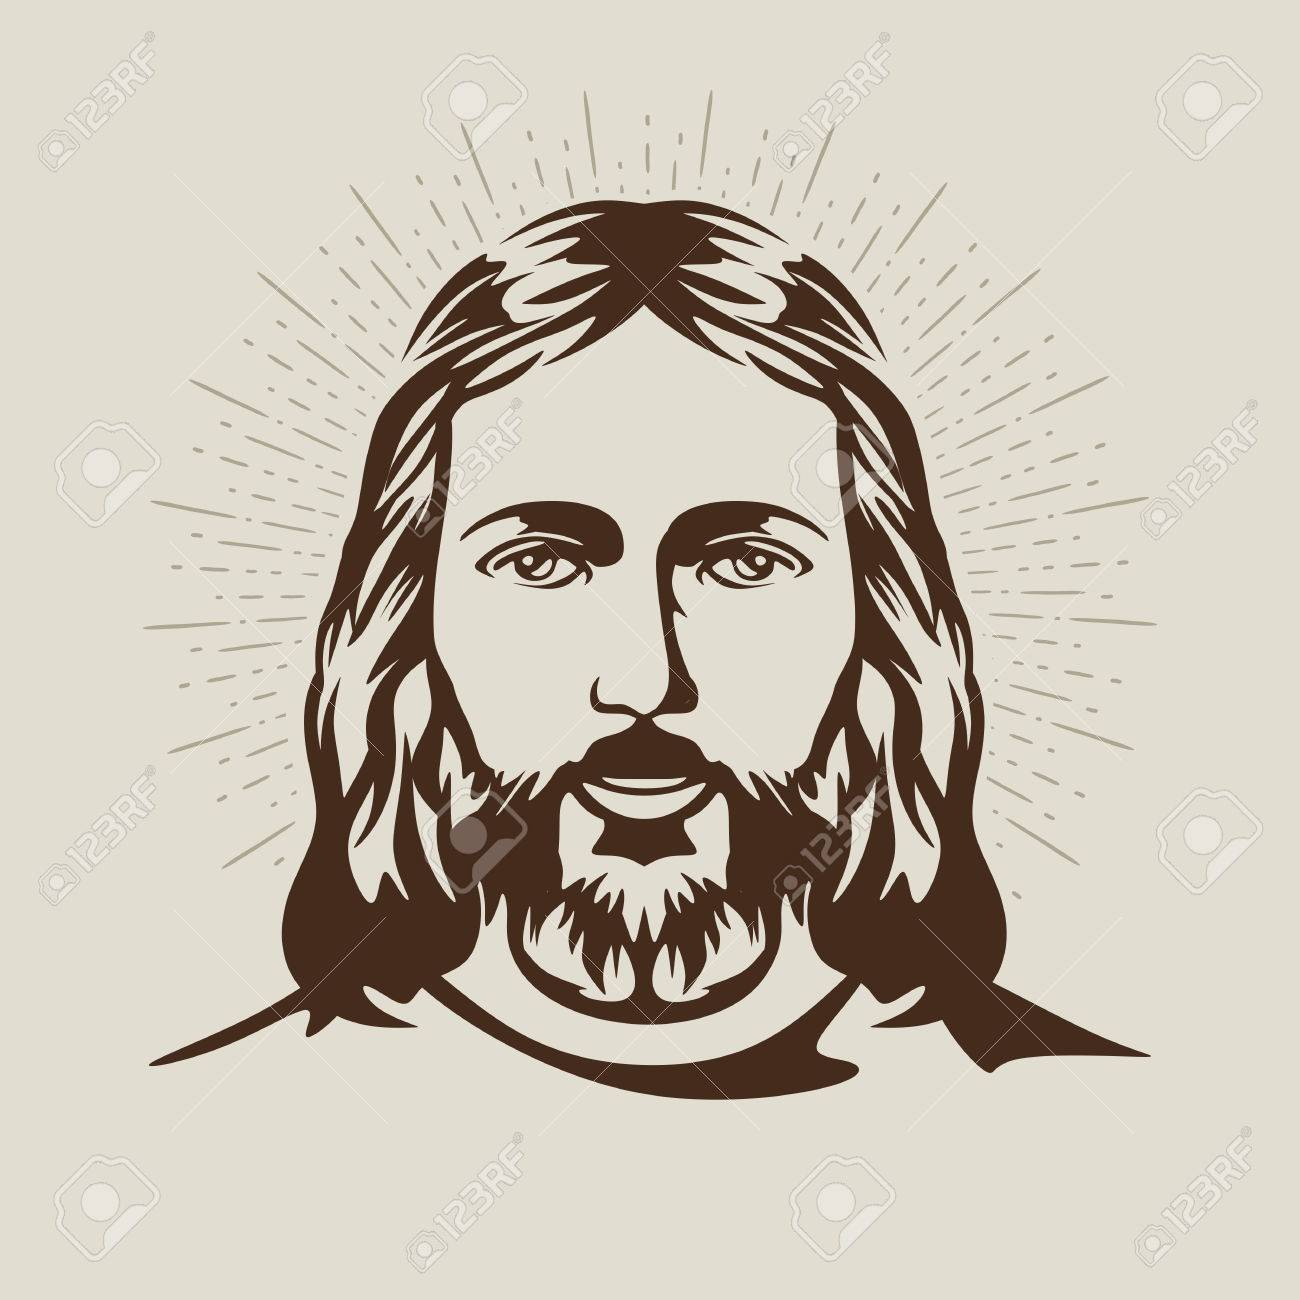 Face of jesus drawing at getdrawings free for personal use 1300x1300 face of jesus christ royalty free cliparts vectors and stock altavistaventures Gallery